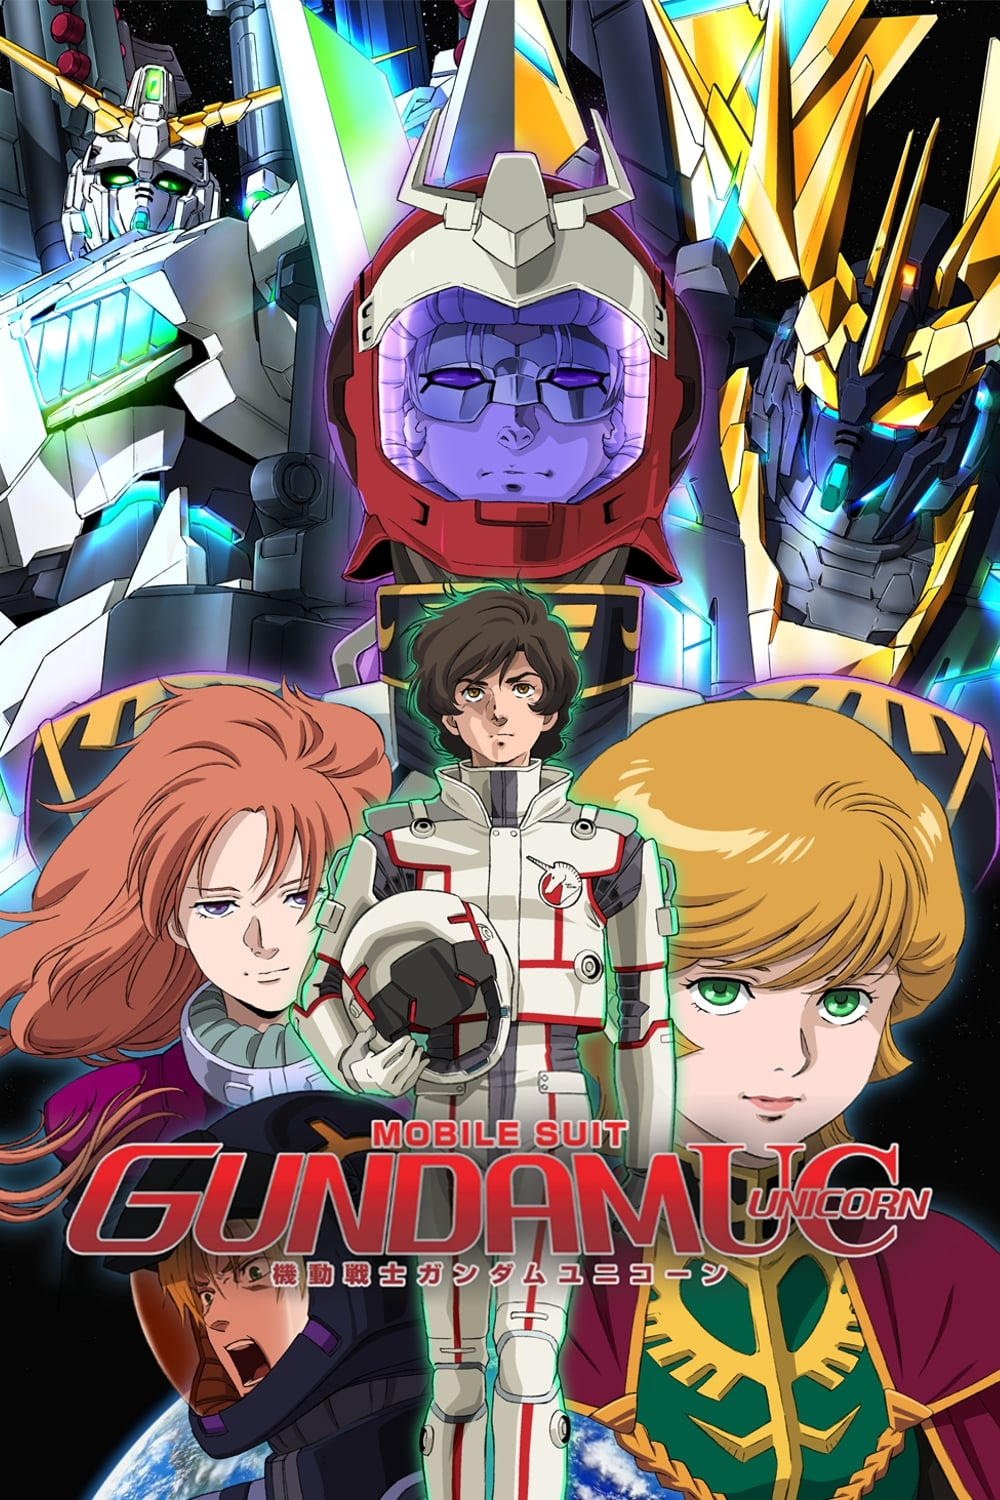 Mobile Suit Gundam Unicorn (2010)